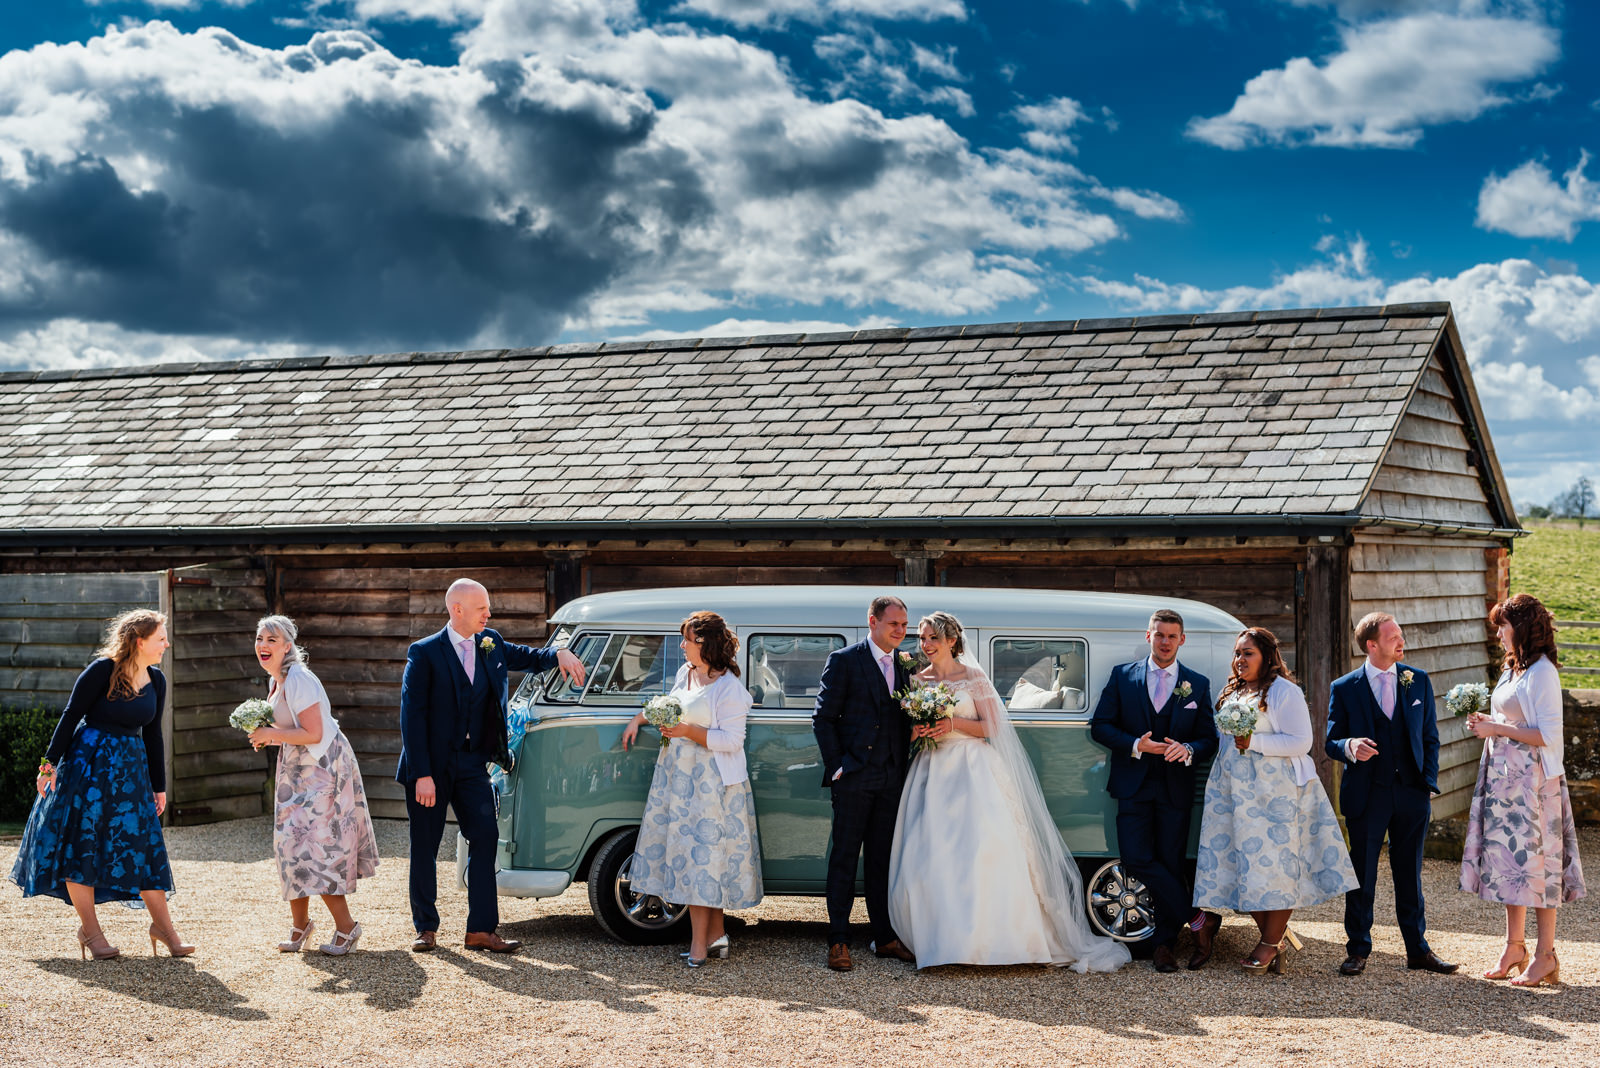 wedding party posing in front of campervan